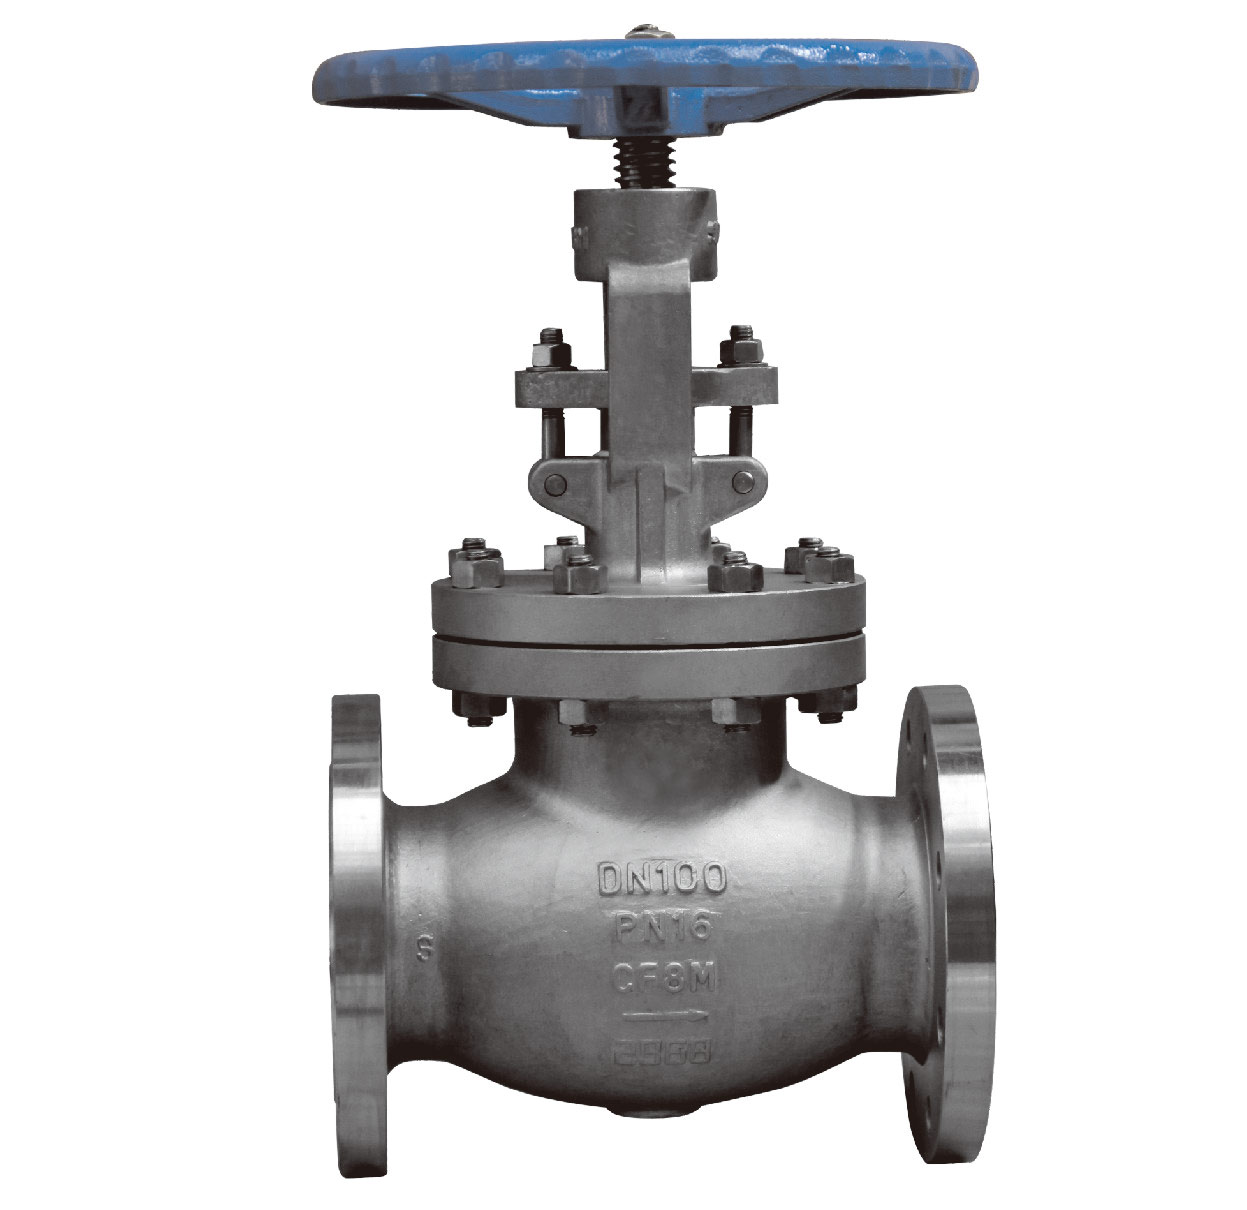 Cast Steel Globe Valve - Carbon Steel, Stainless Steel Manual Globe Valves